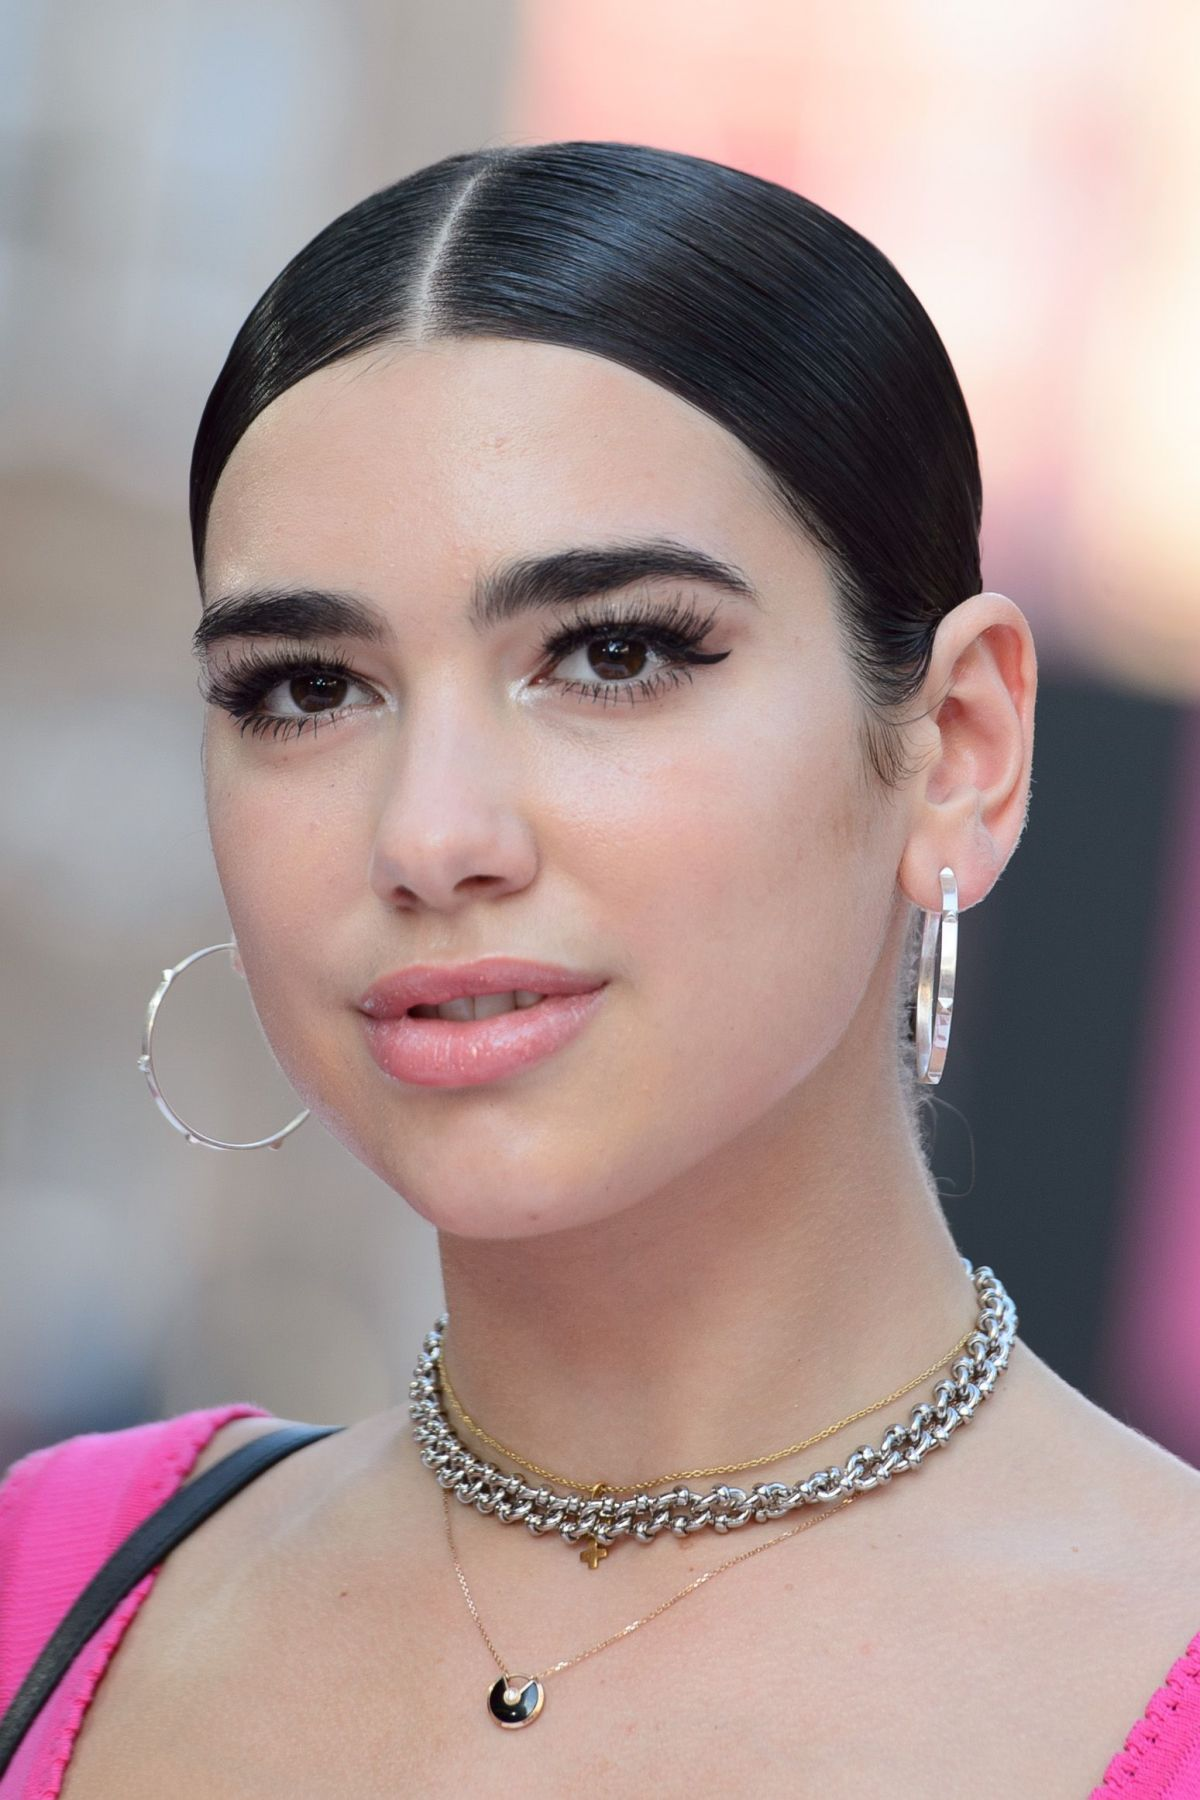 dua lipa - photo #17